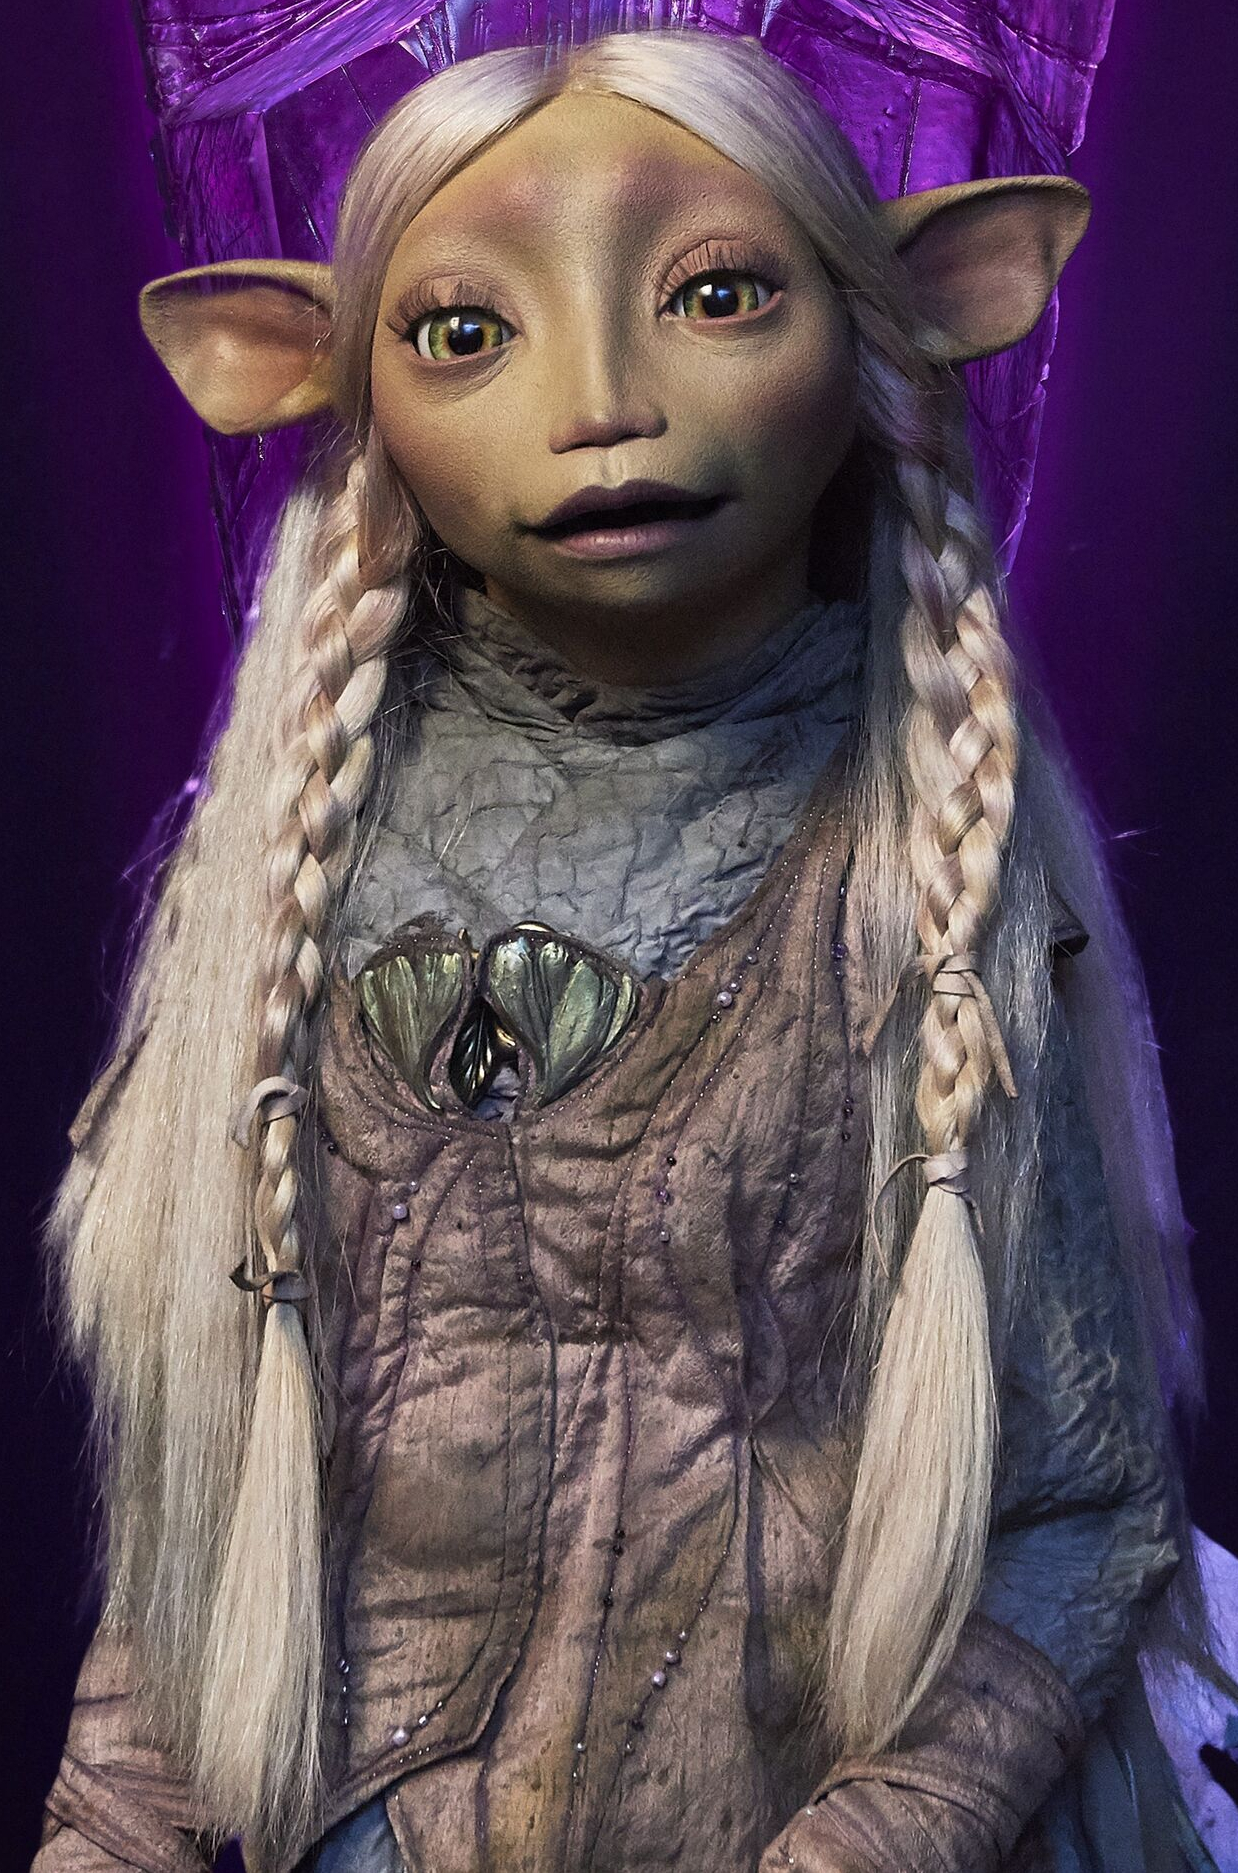 Brea, one of the main characters, voiced by Anya Taylor-Joy